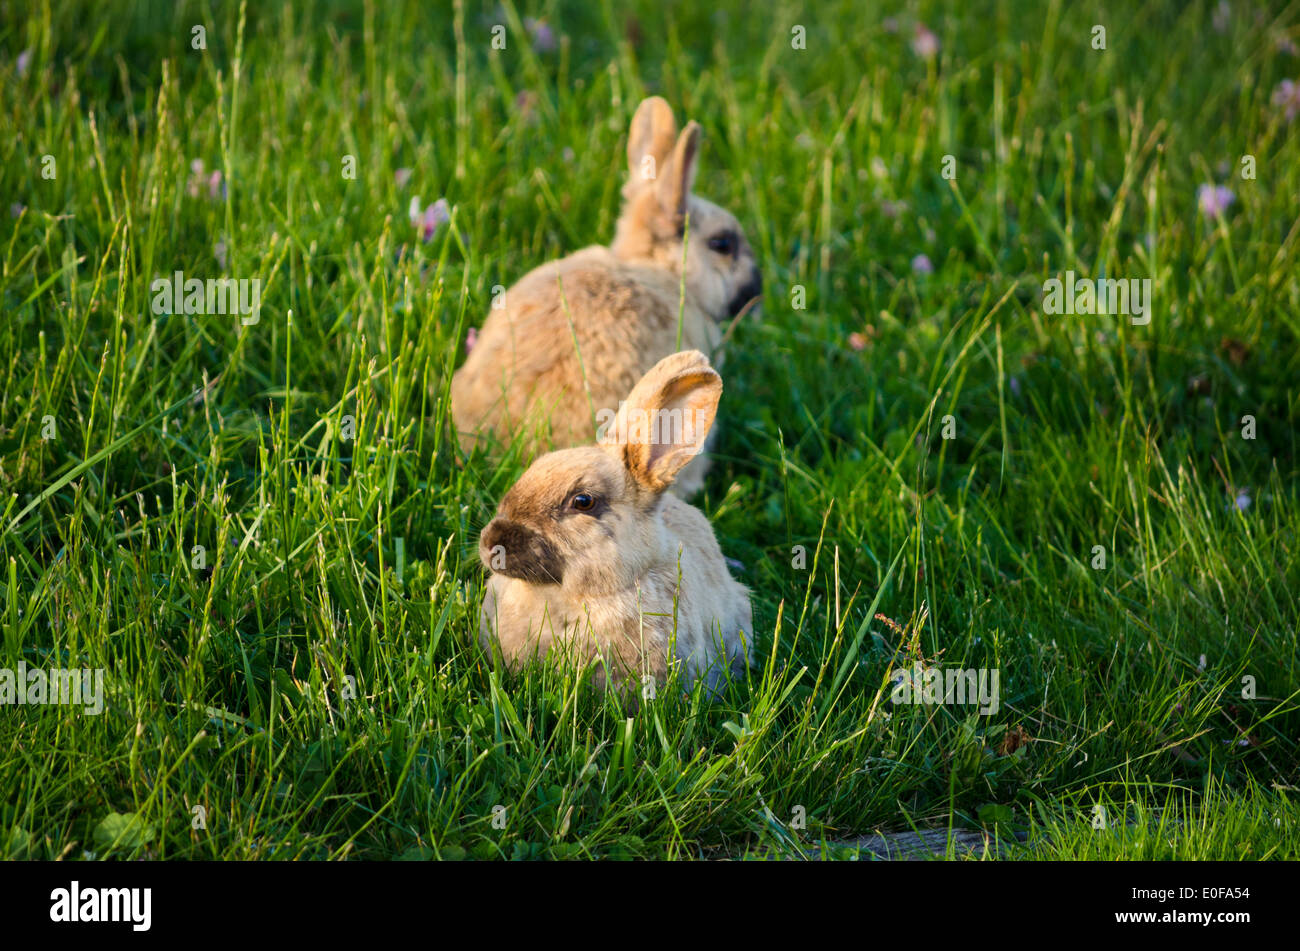 two-cute-bunnies-or-rabbits-in-the-grass